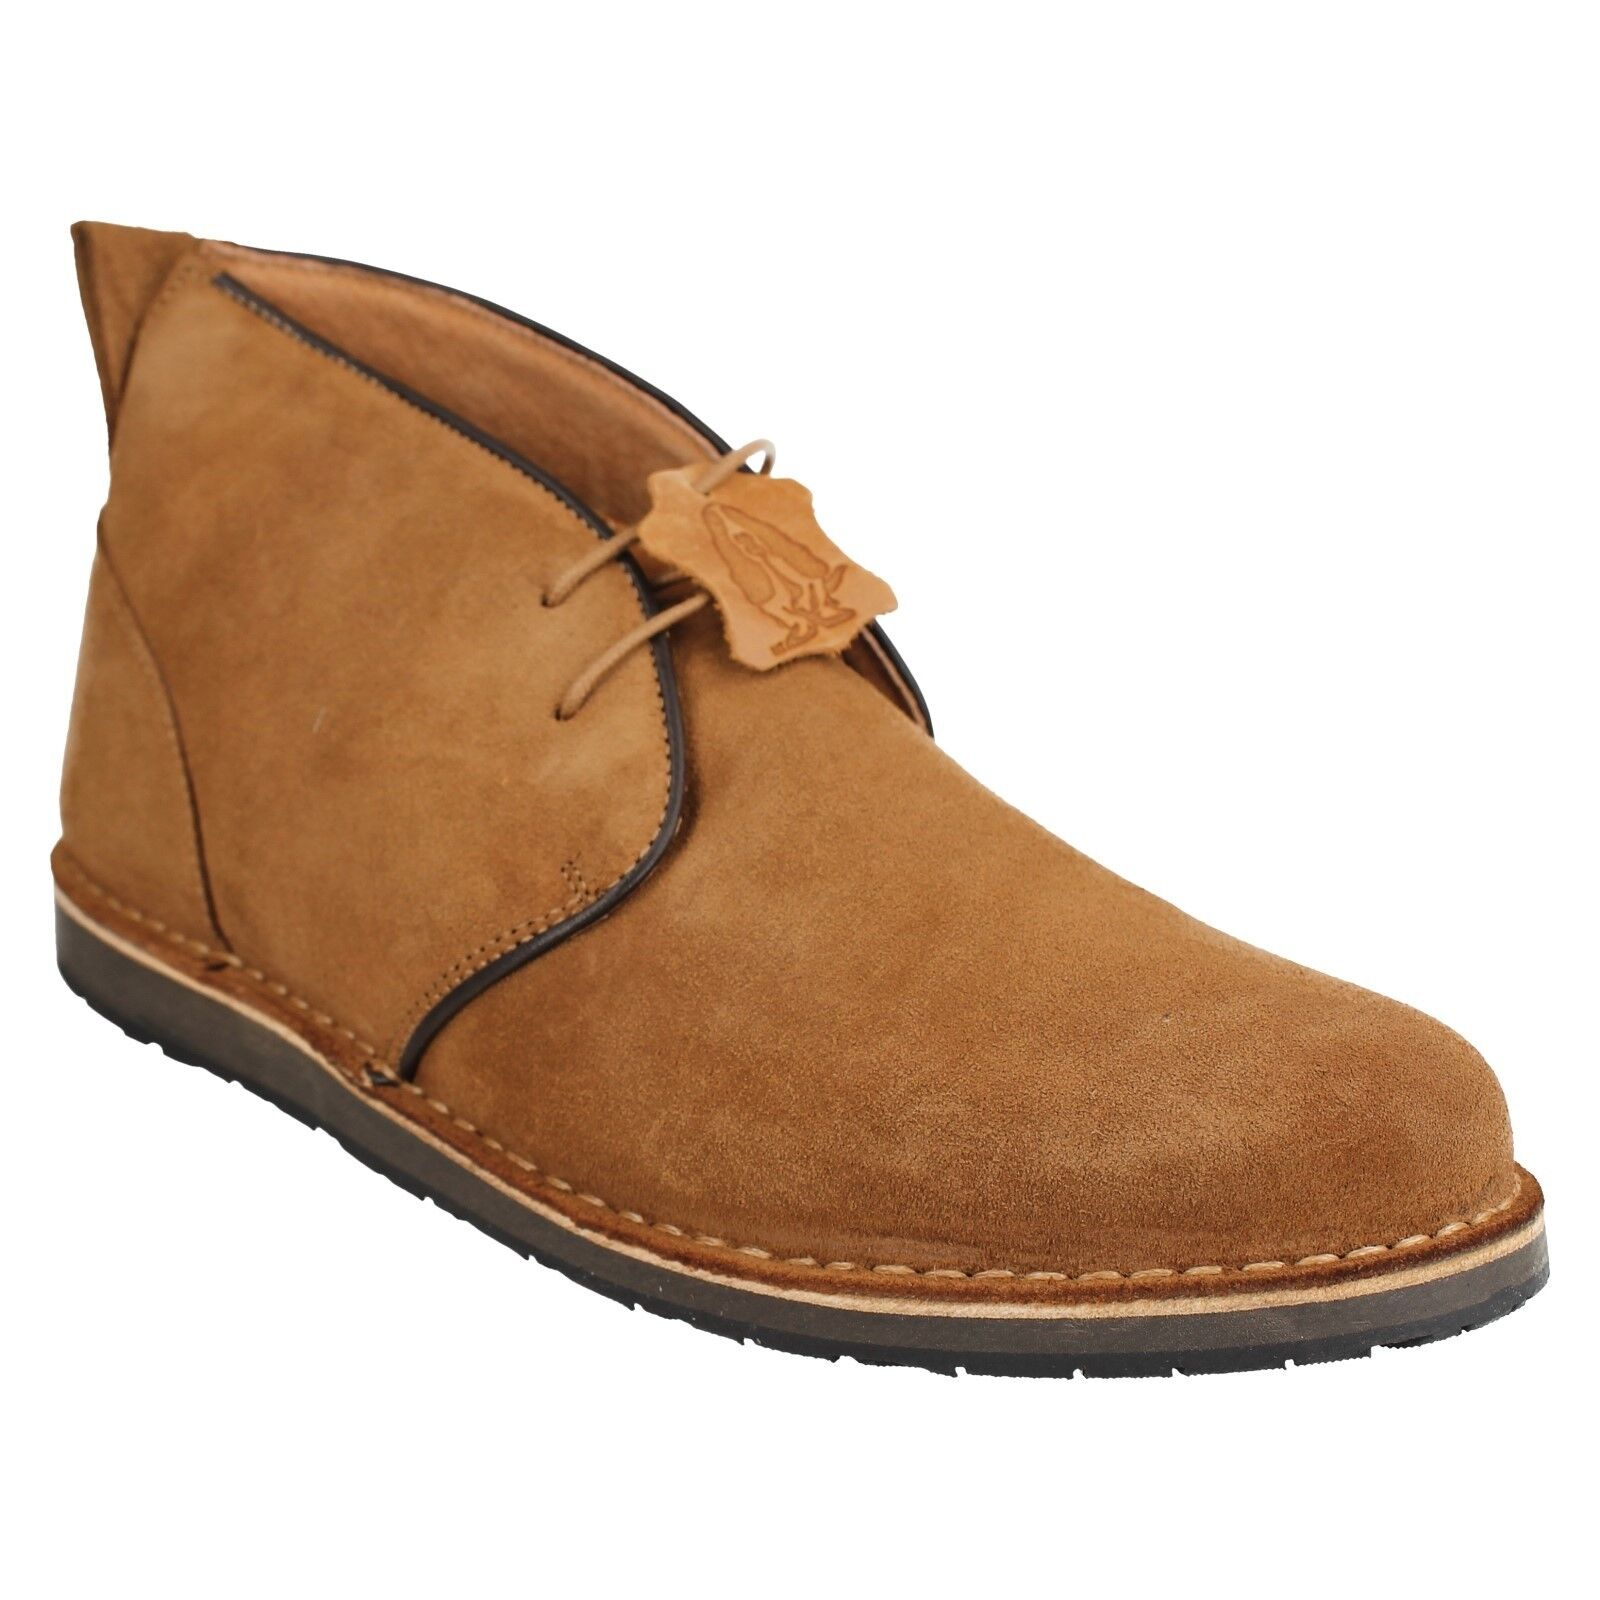 MENS HUSH PUPPIES BARRICANE HERITAGE PLAIN TAN BROWN LACE UP SMART ANKLE BOOTS